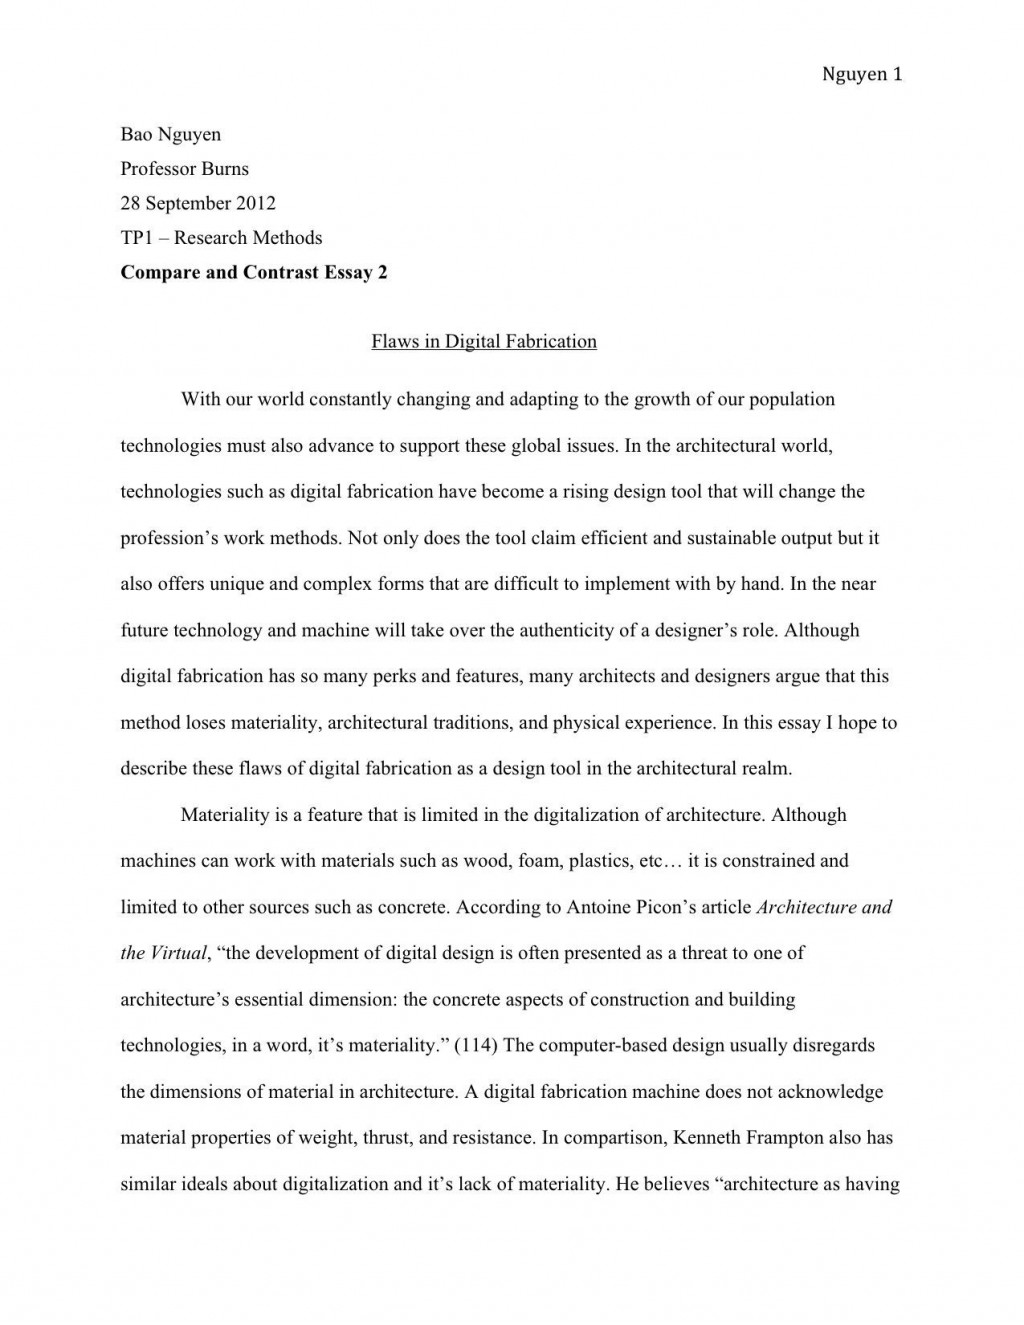 002 Essay Example Movie Review Name Examples Refrence Mulan Disney Princess Aesthetics Basics How To Write Film Paper For College Analysis Stirring A Samples Large